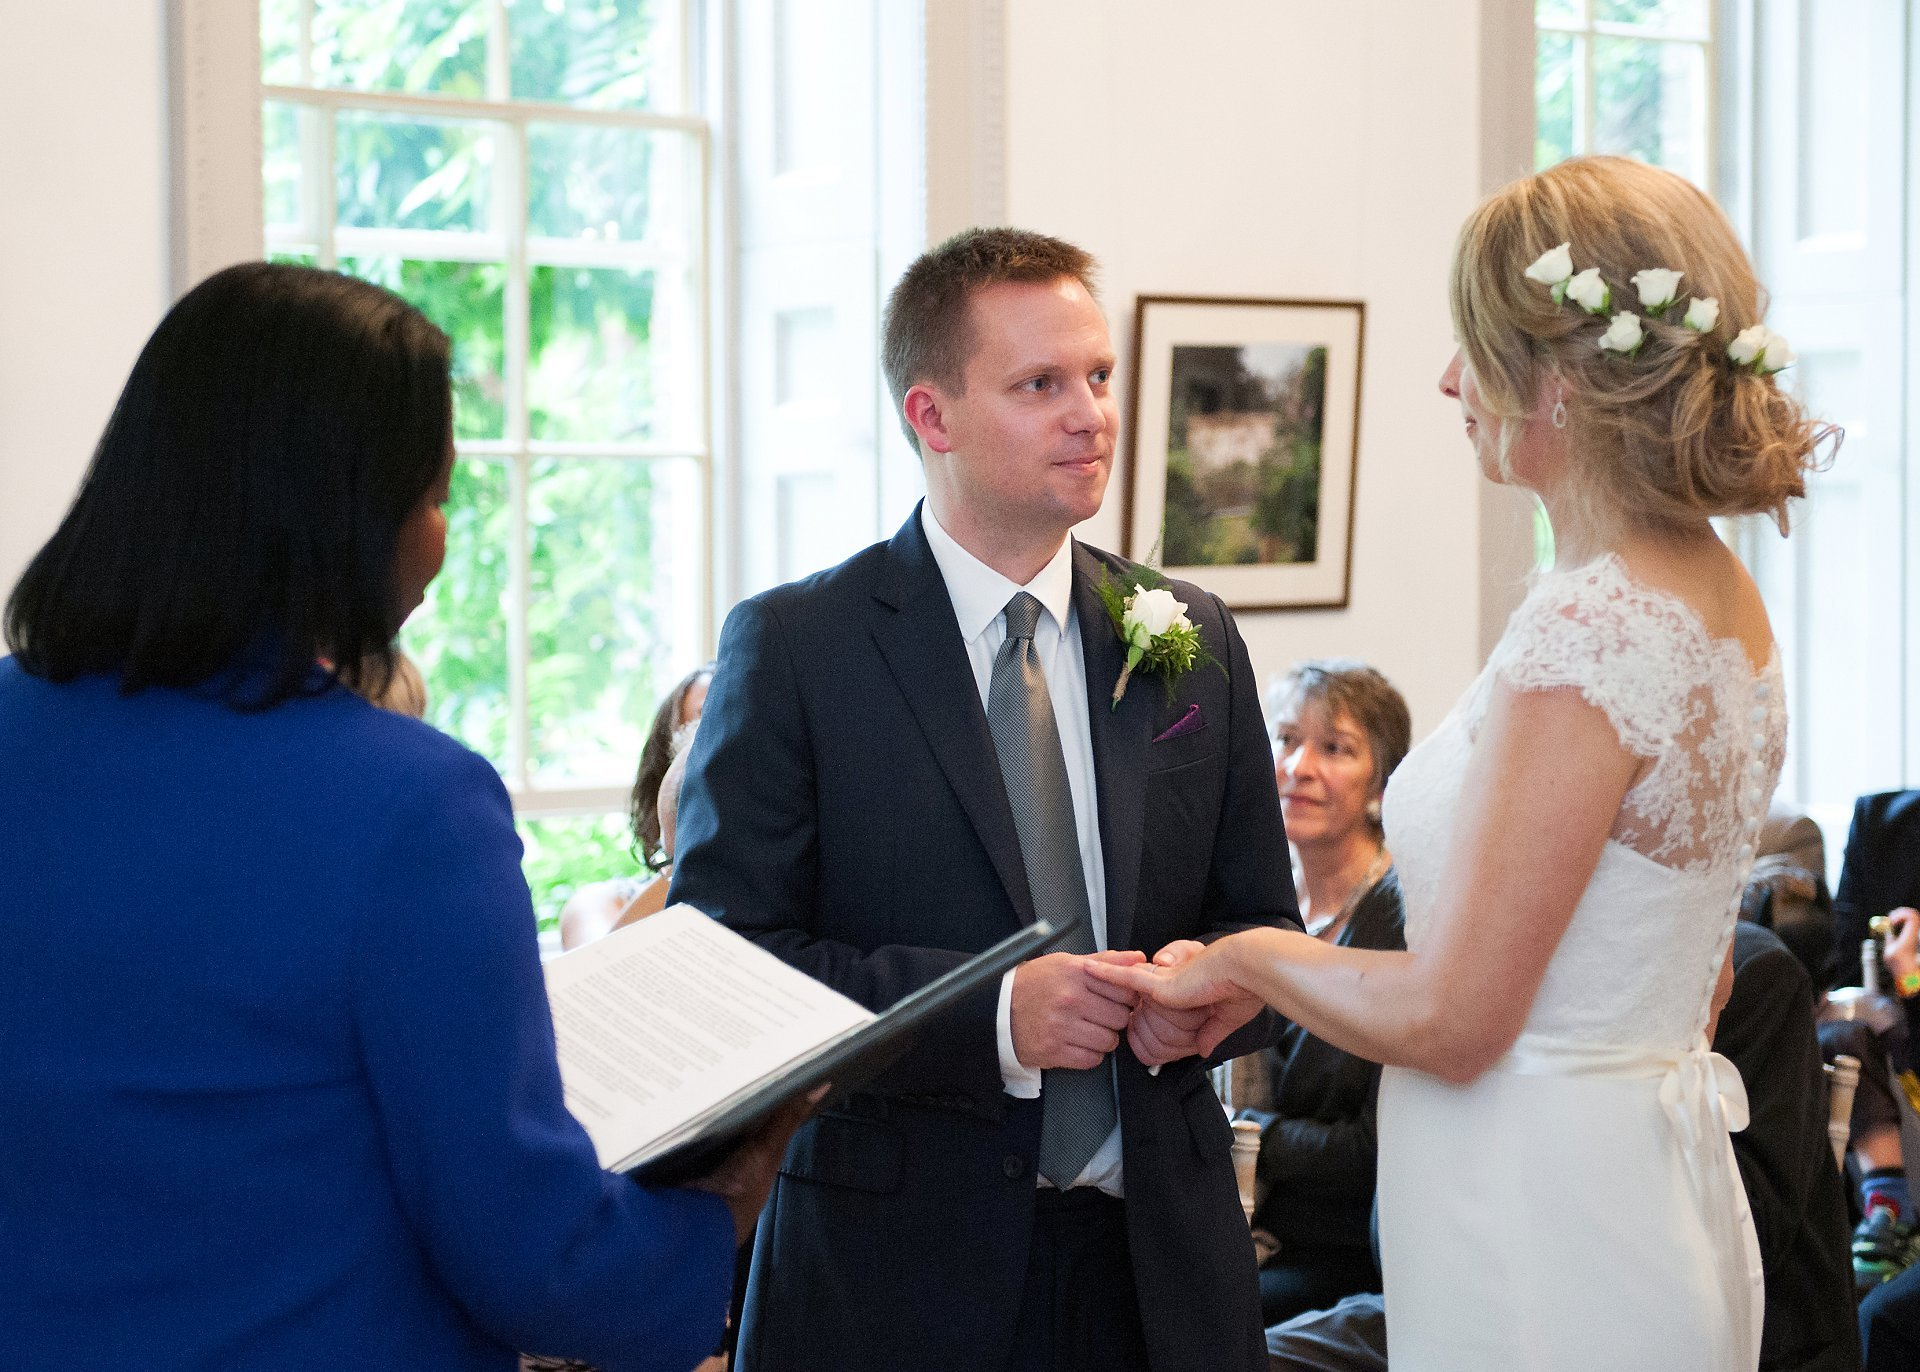 Vows and ring exchange in the Bishop Terrick's Drawing Room at Fulham Palace